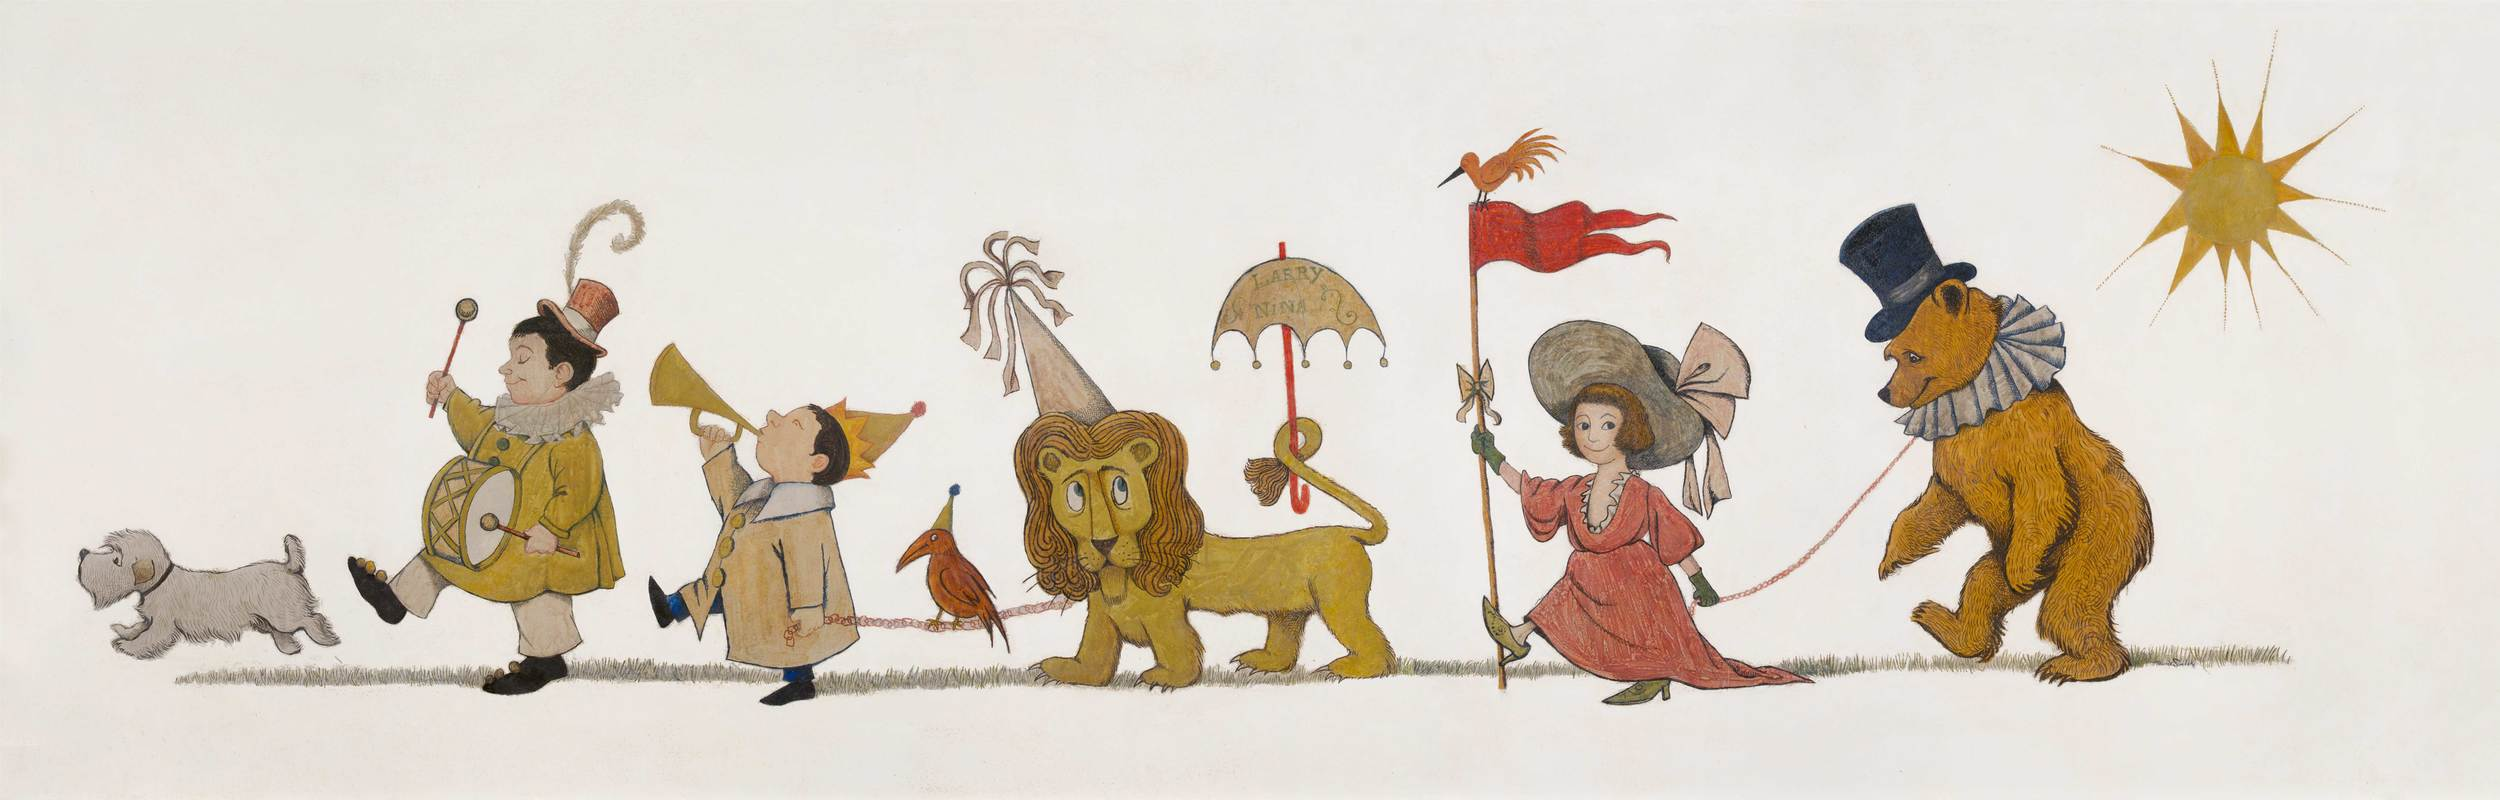 Courtesy of The Rosenbach of the Free Library of Philadelphia, 2008.0005 Given by Larry and Nina Chertoff in loving memory of Roslyn and Lionel Chertoff and Eugene Glynn. The Chertoff Mural, © 1961 by Maurice Sendak, all rights reserved.